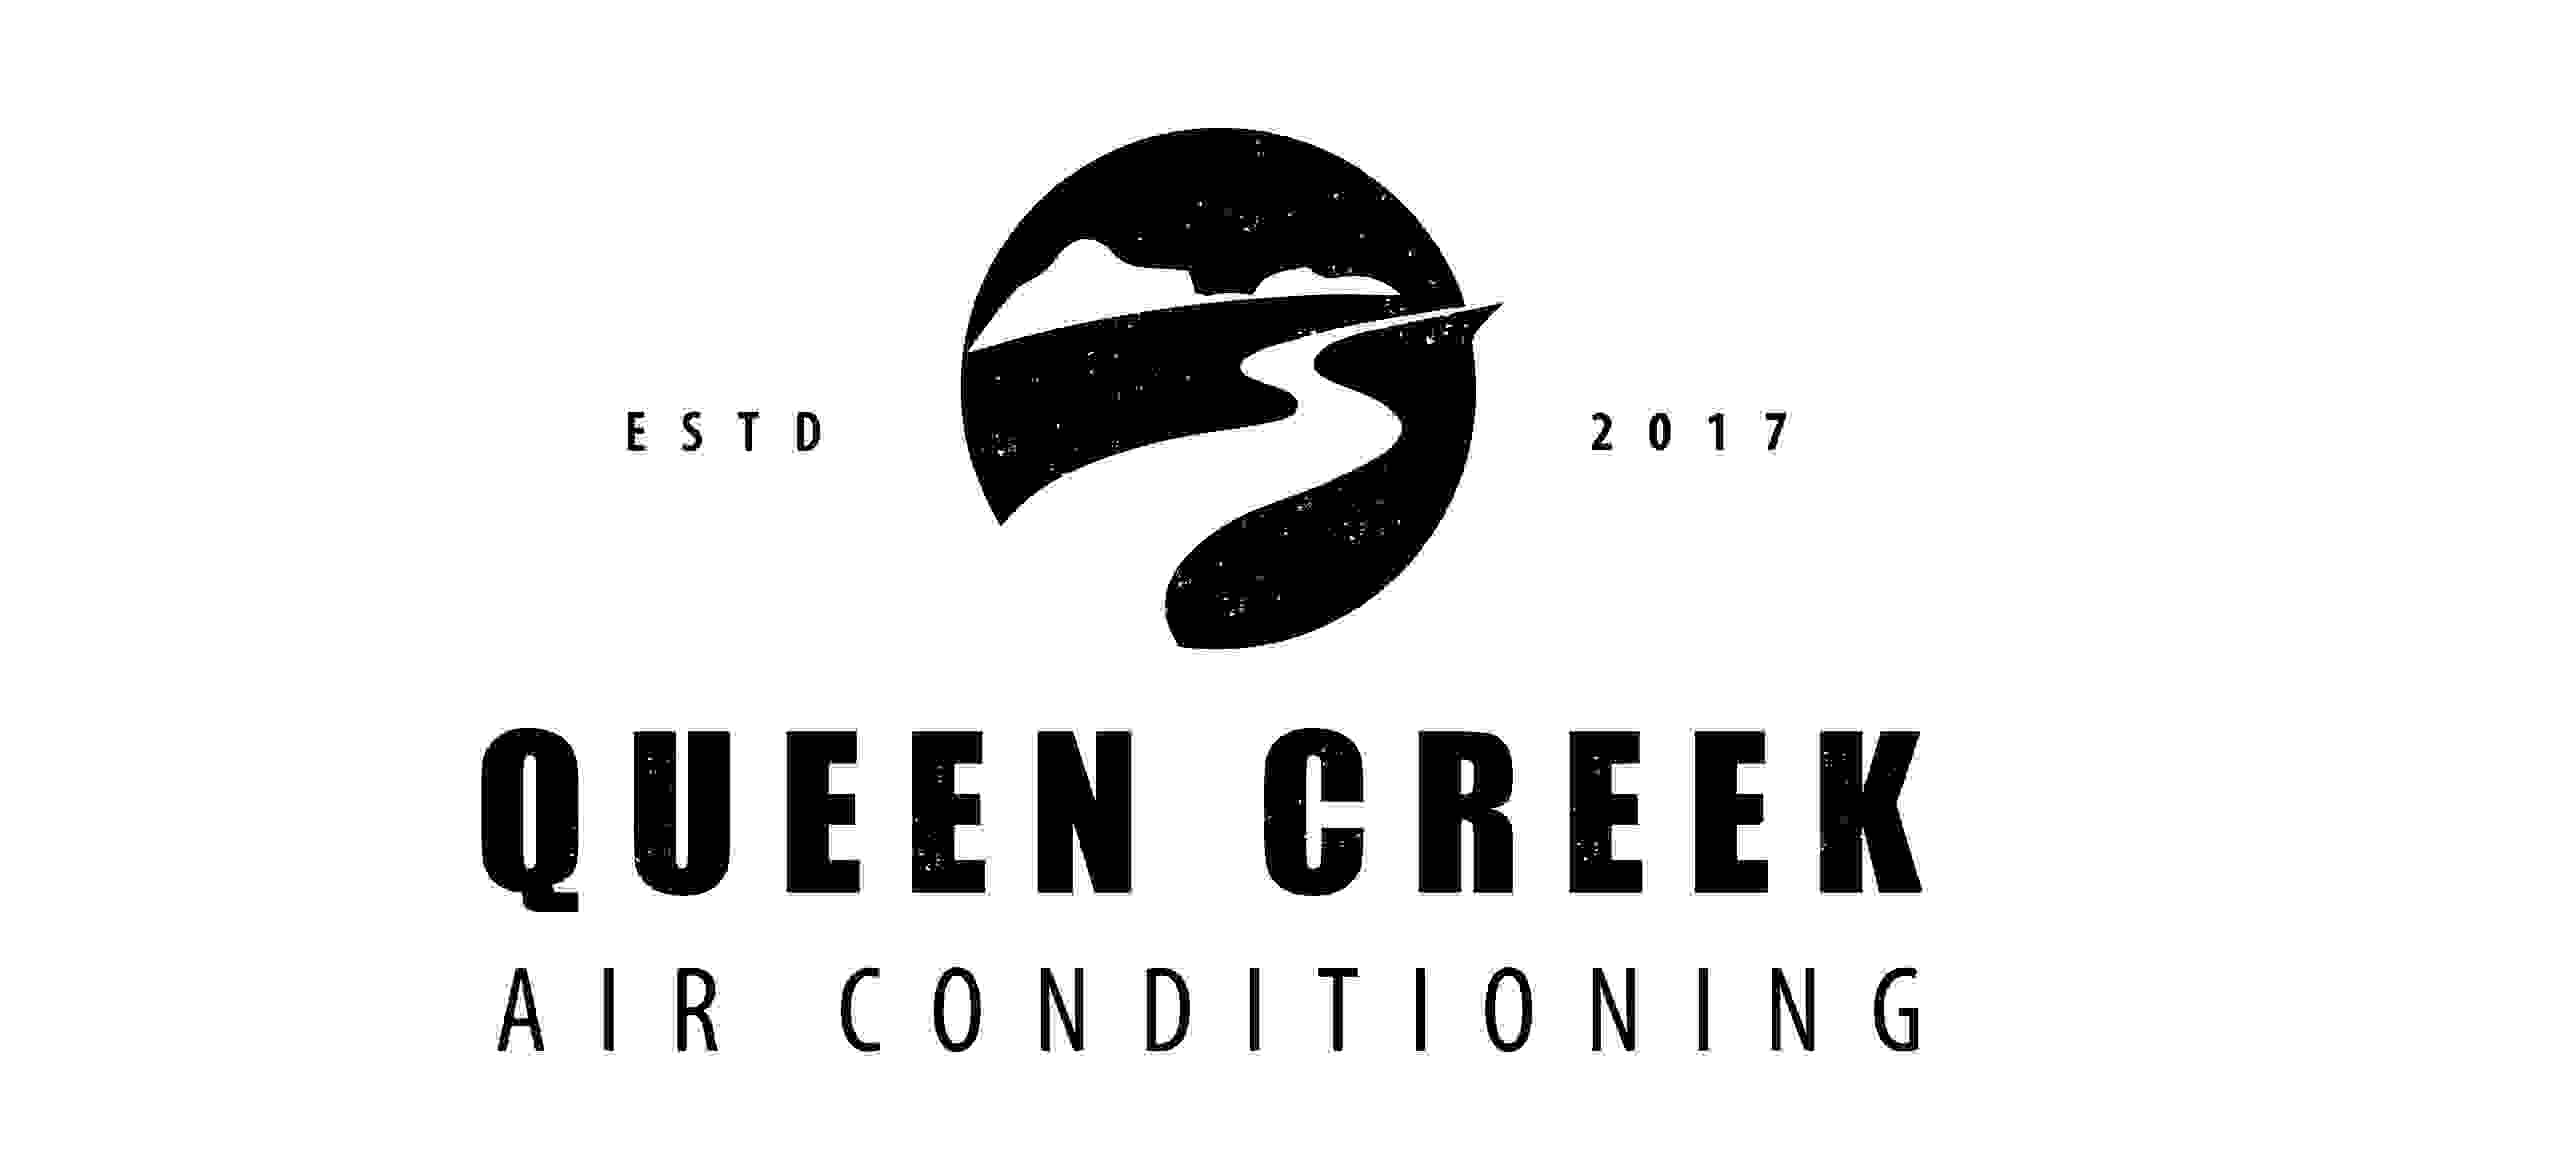 Queen Creek Air Conditioning, LOGO